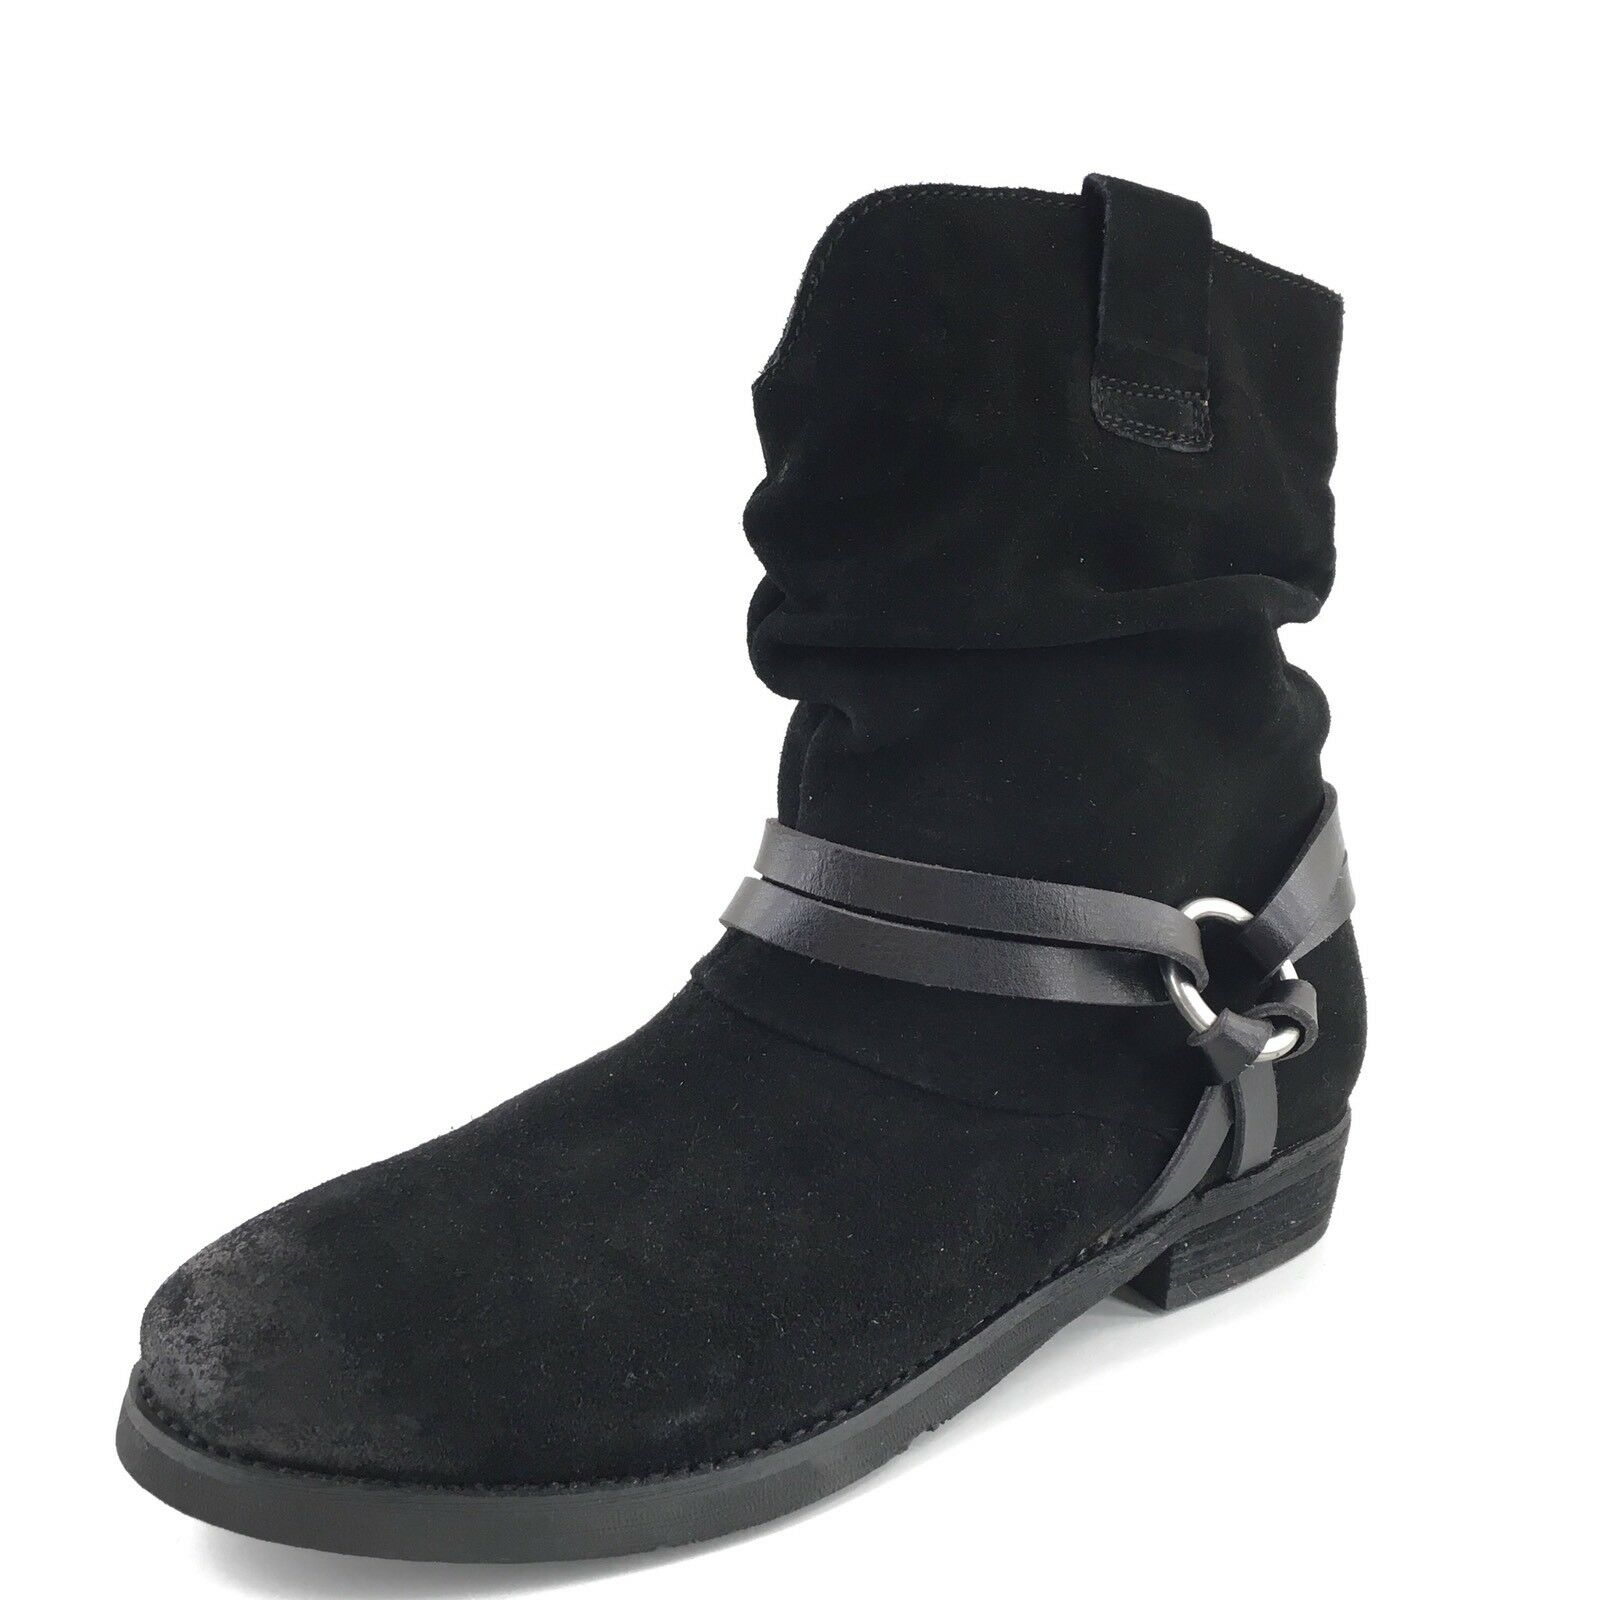 Corso Como 'Seaton' Slouchy Black Suede Harness Ankle Boots Women's Size 8 M